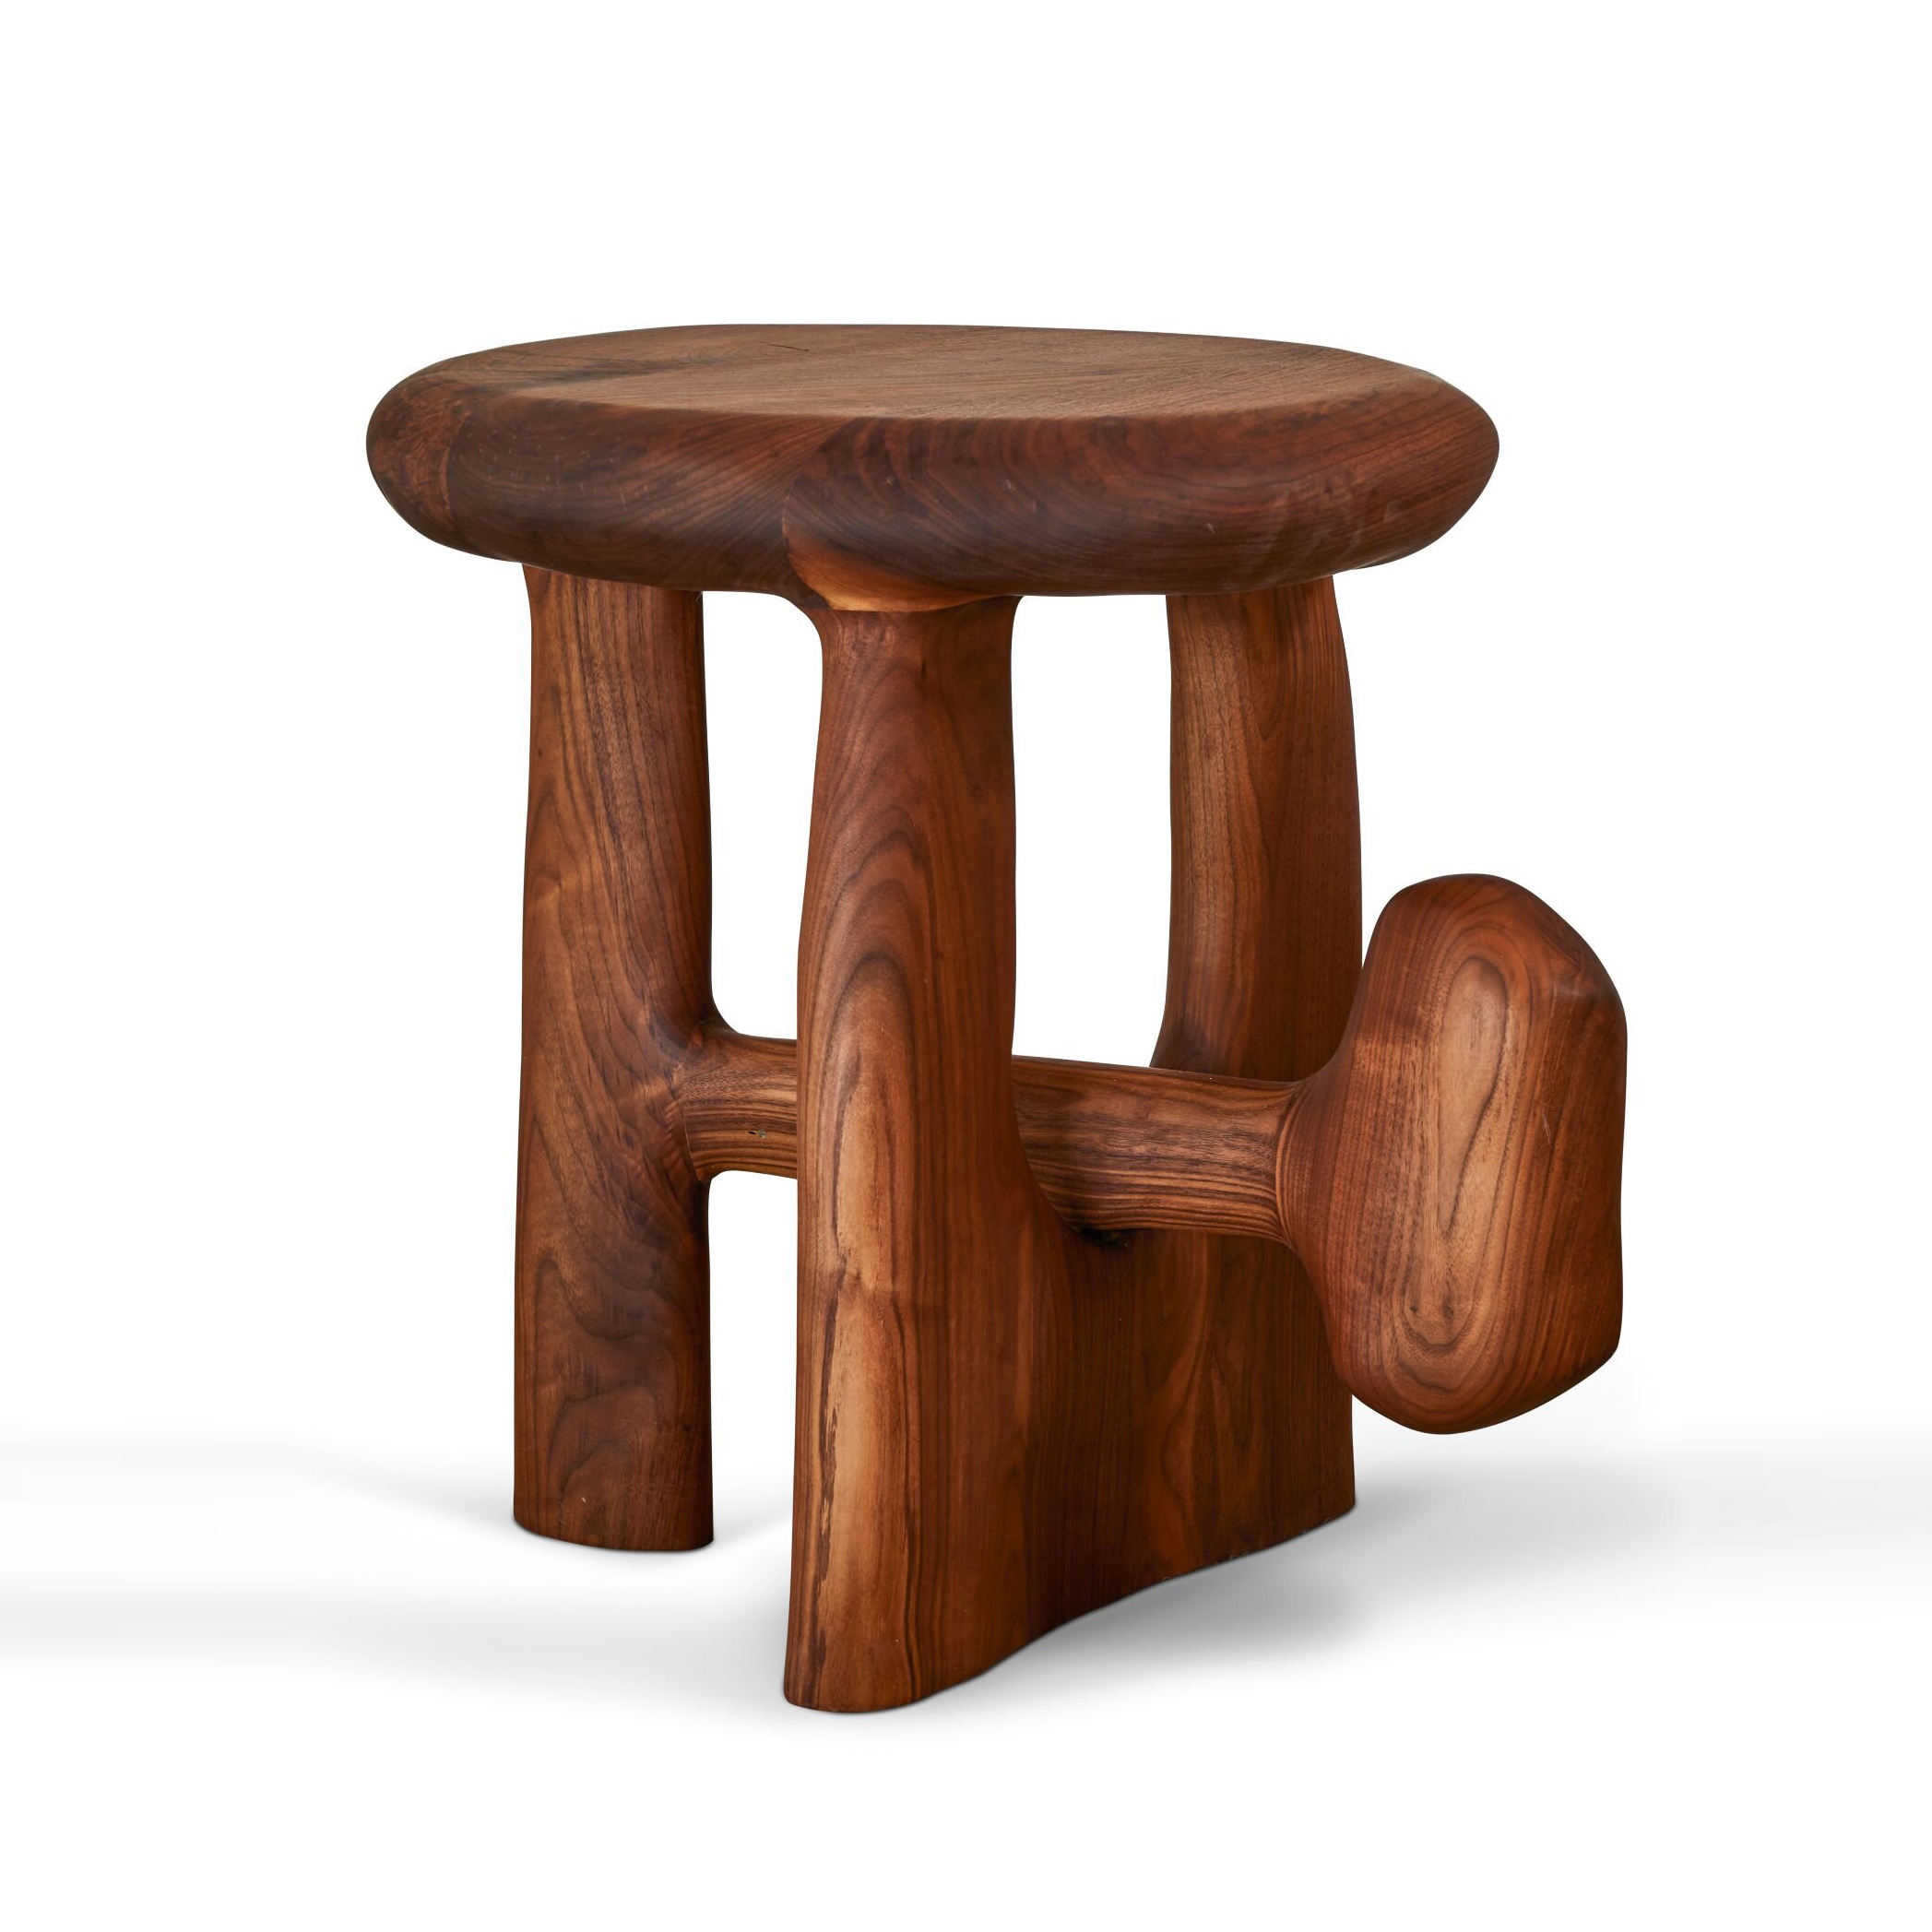 005 Sculptural Side Table by Casey McCafferty